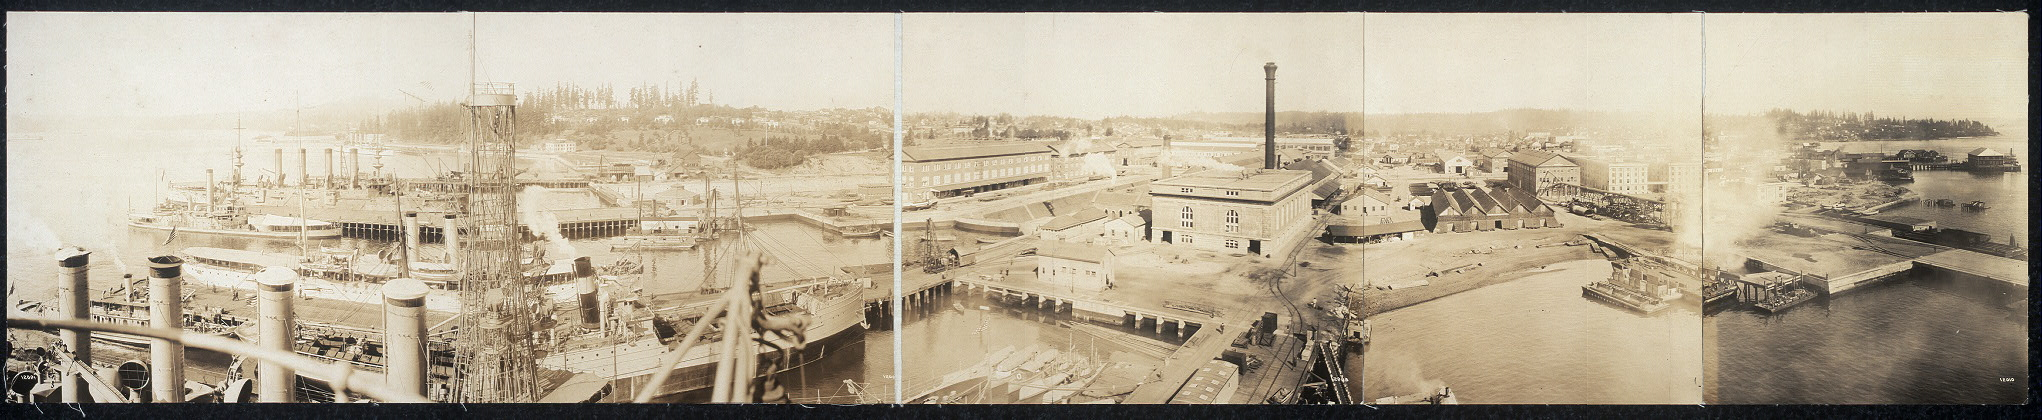 Bremerton Navy Yard views circa 1913